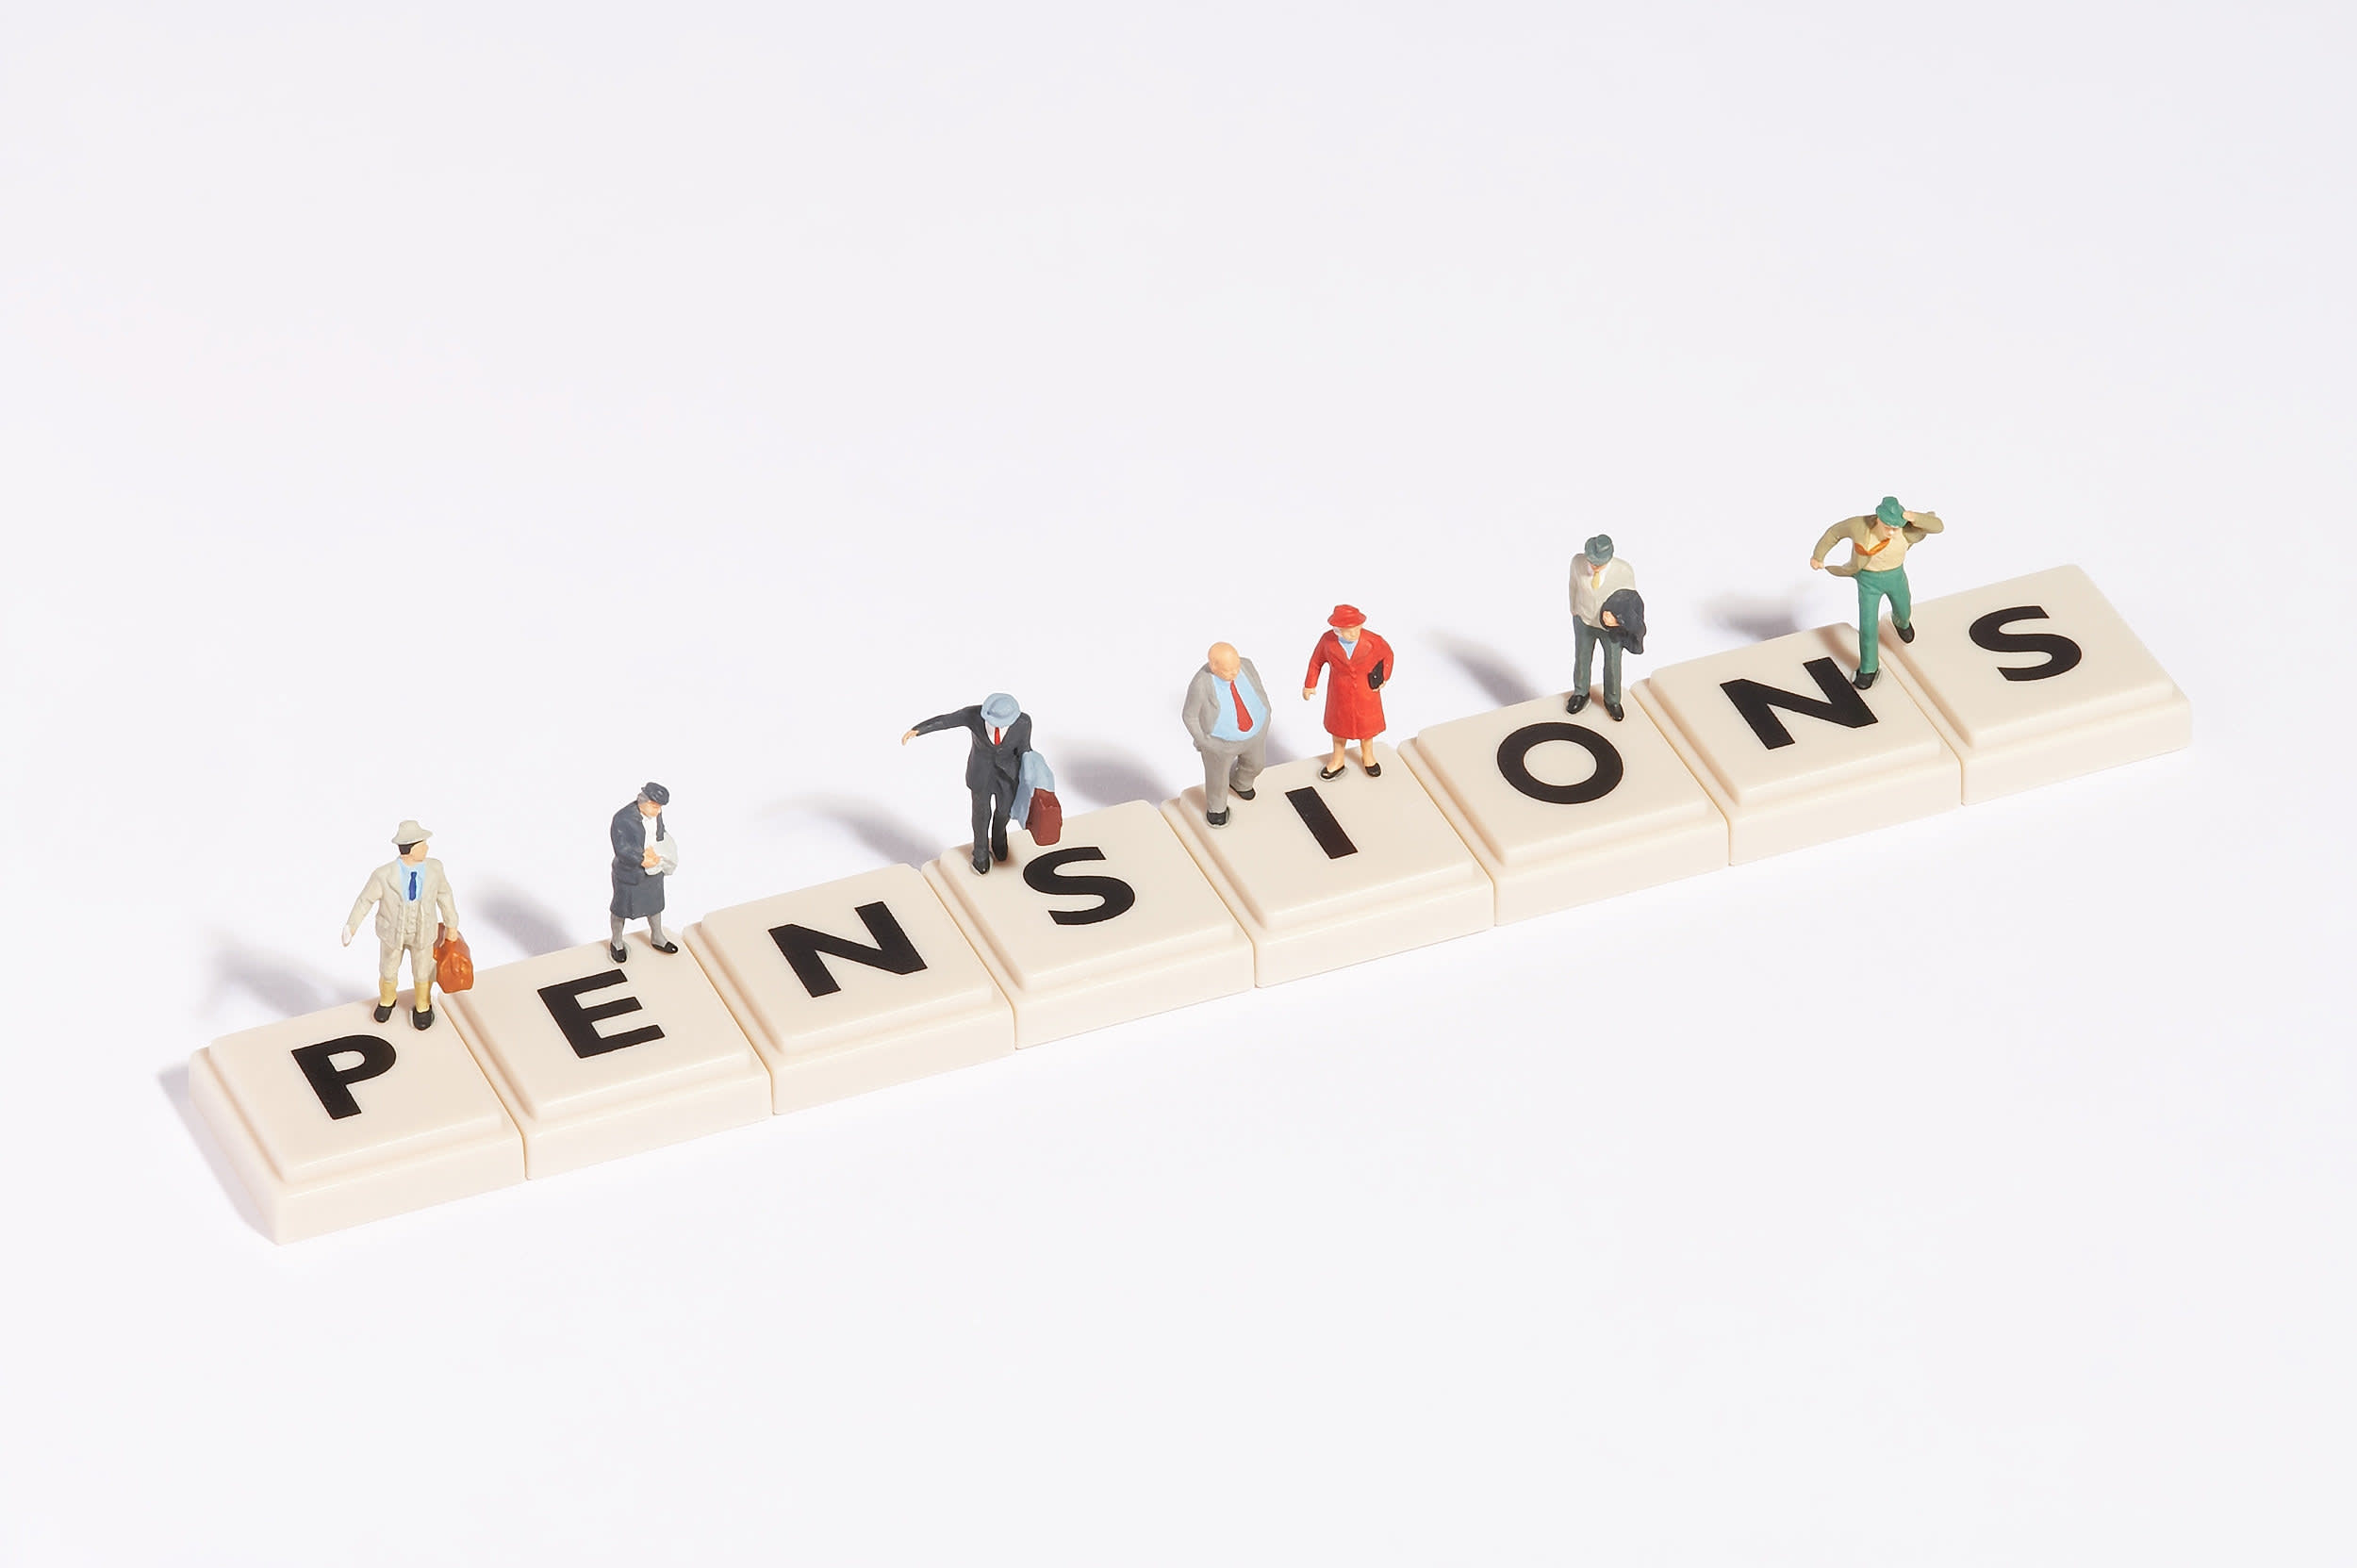 Later state pension age 'must come with job opportunities'